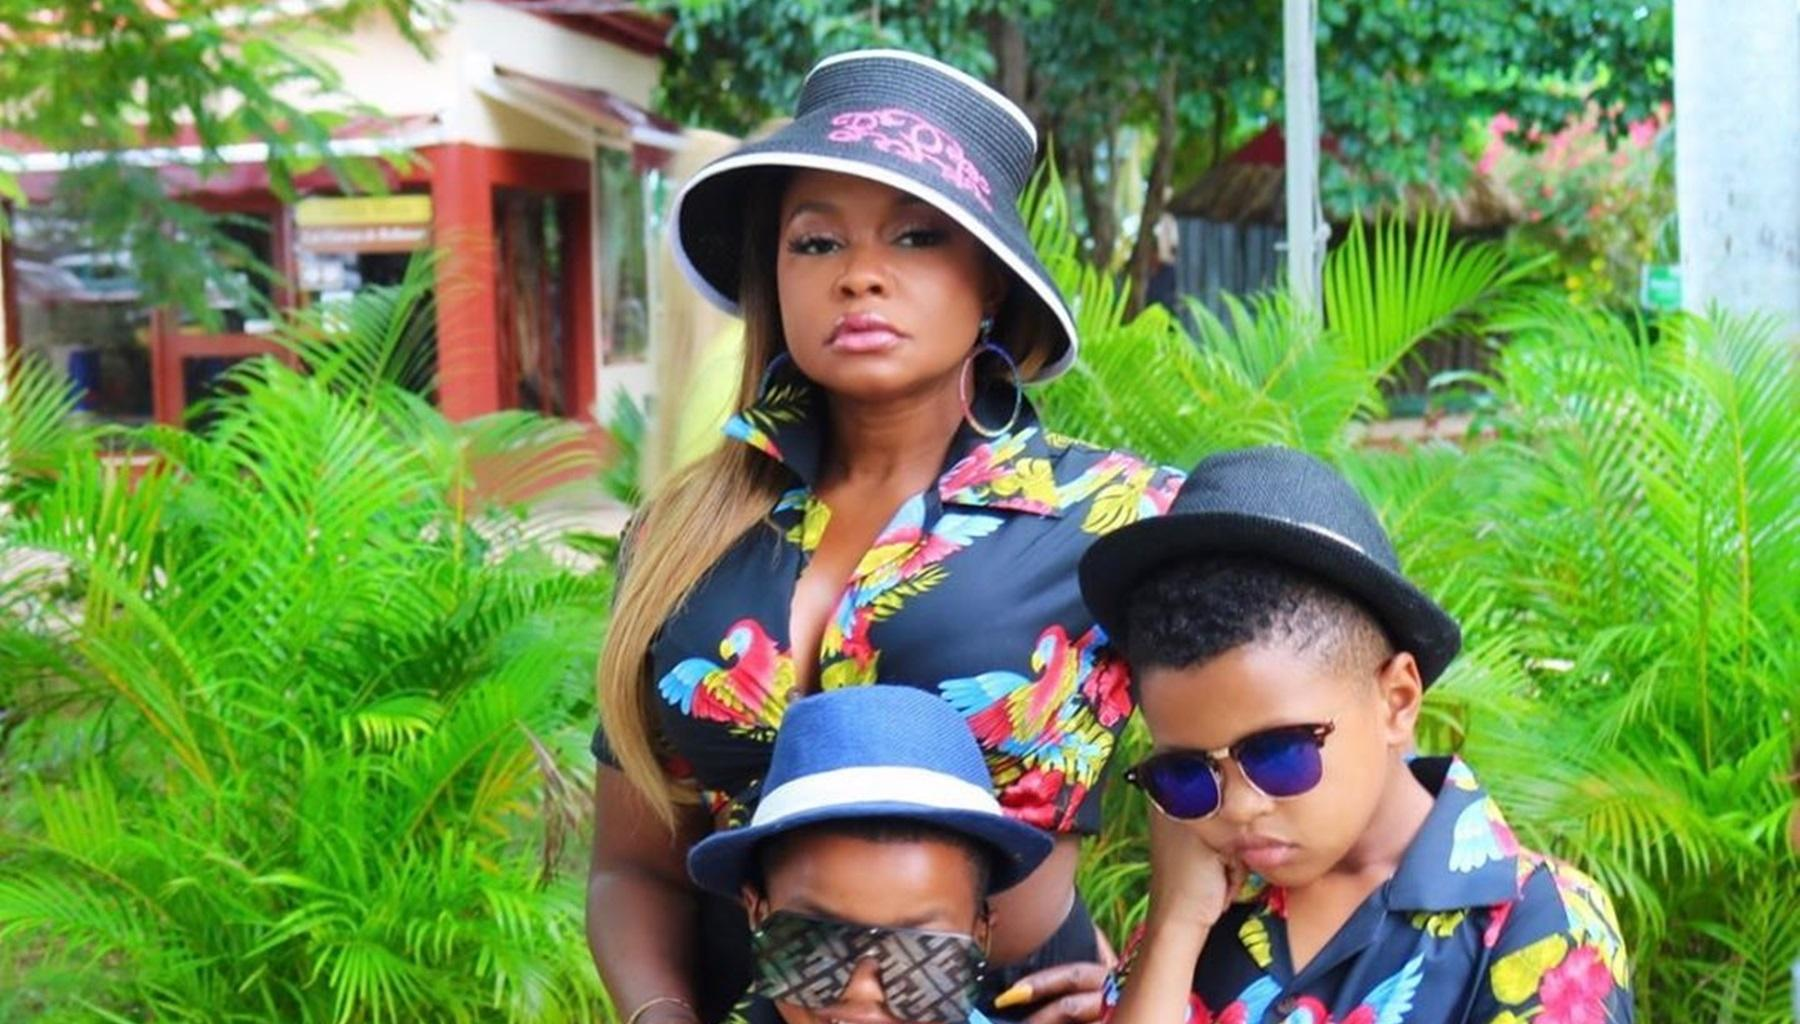 Phaedra Parks Worries Fans With A Message About Her Health